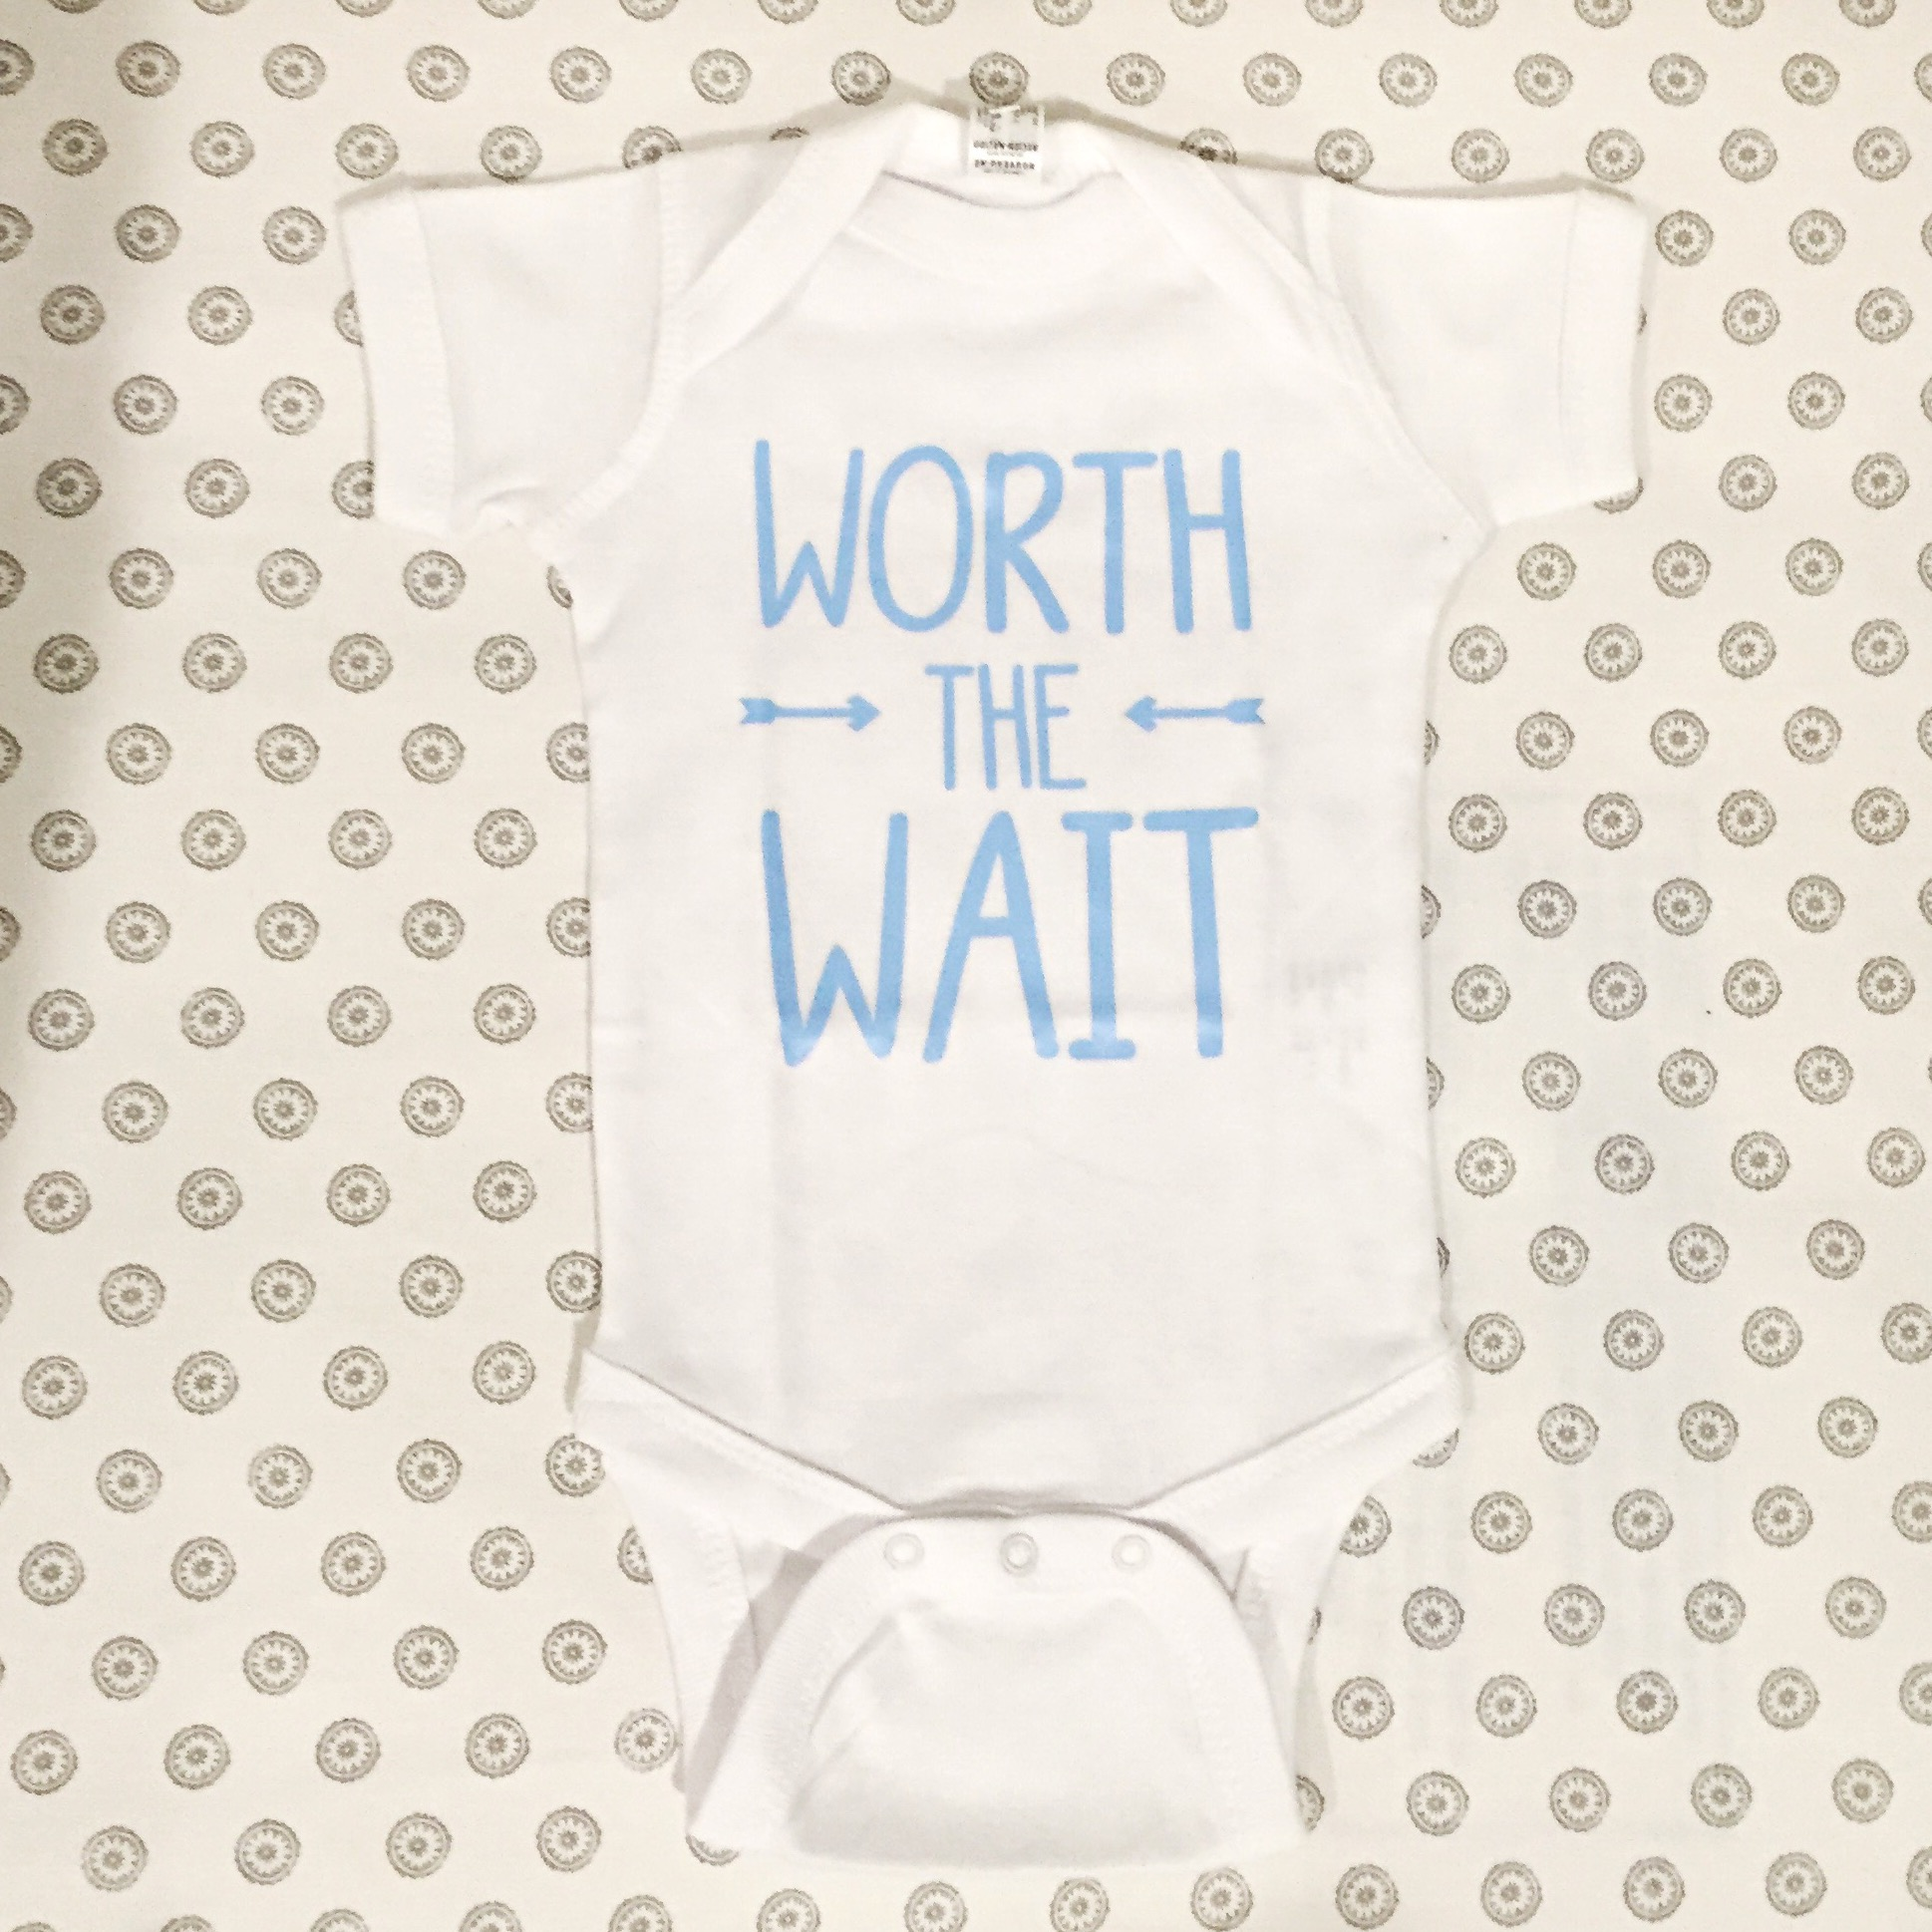 66a8b17eed43 Announce Your Pregnancy with This Adorable Worth the Wait Onesie in ...